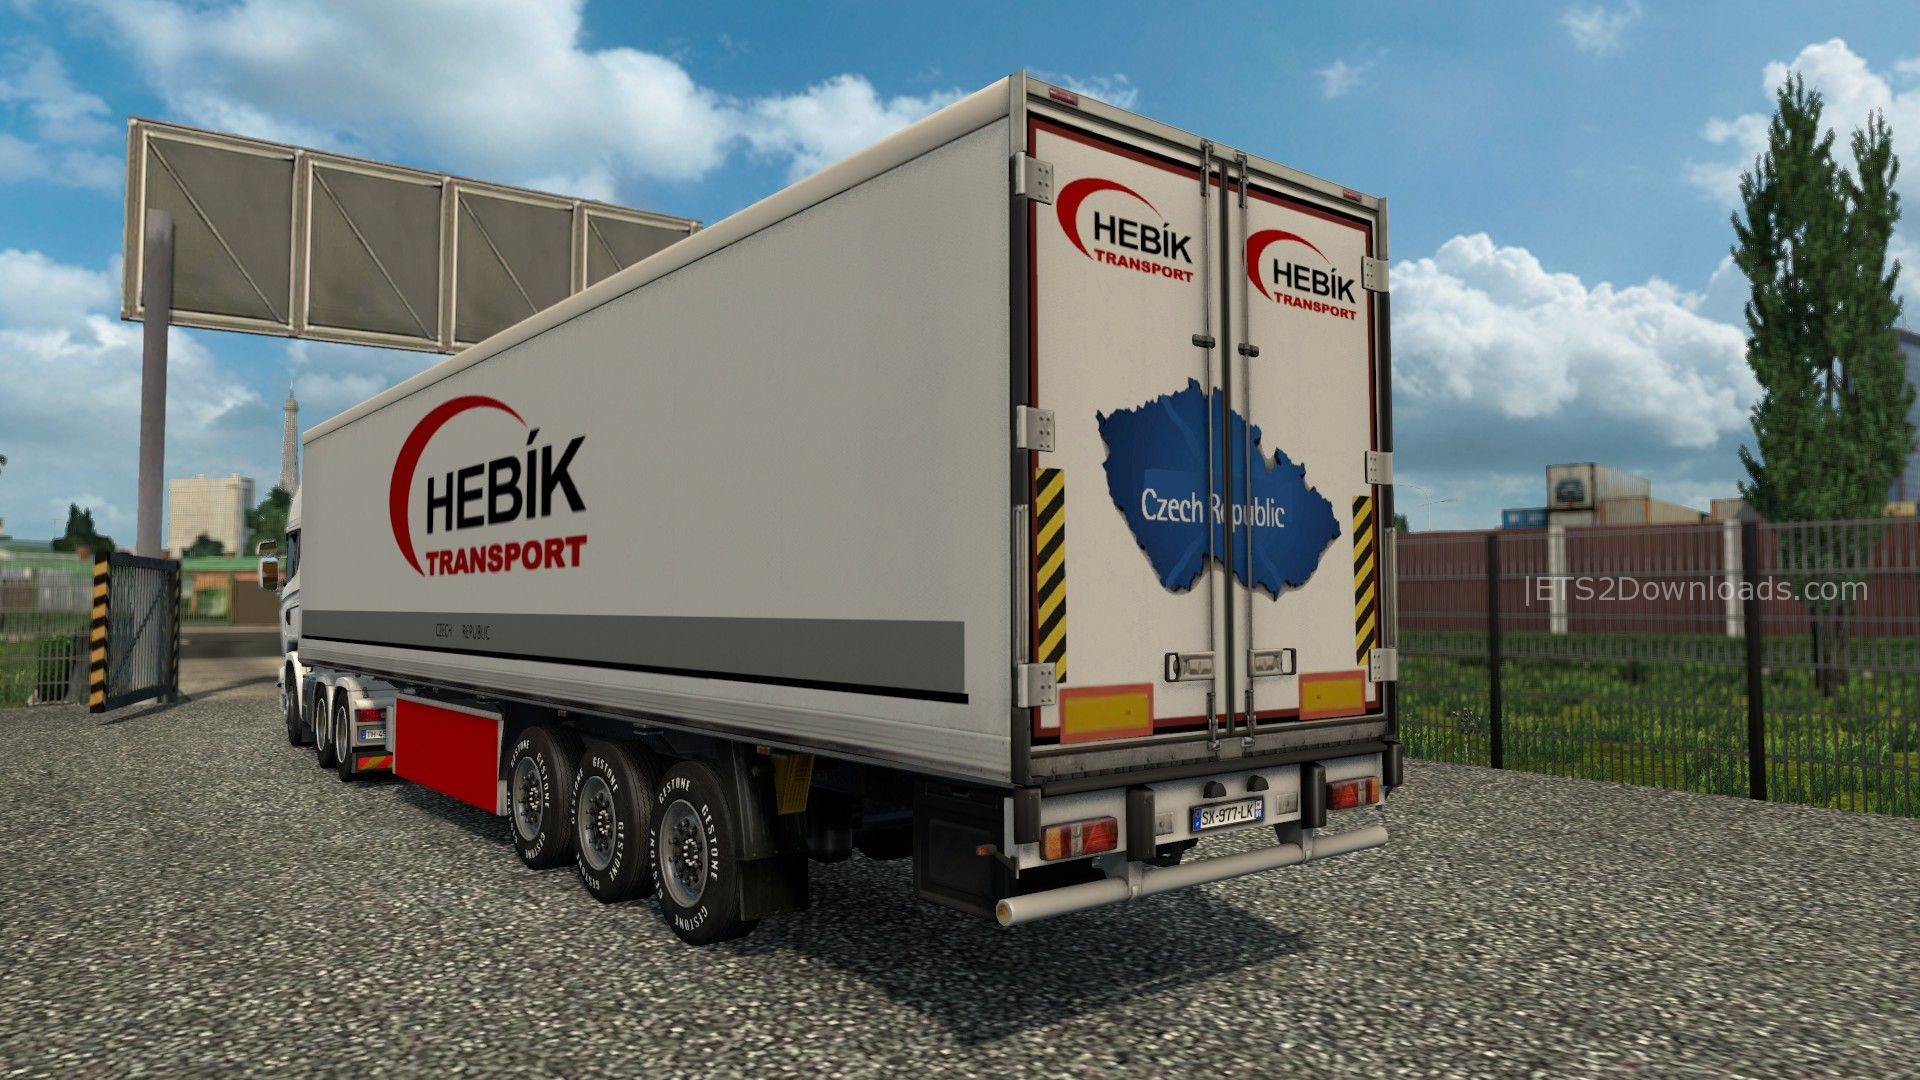 hebik-transport-trailer